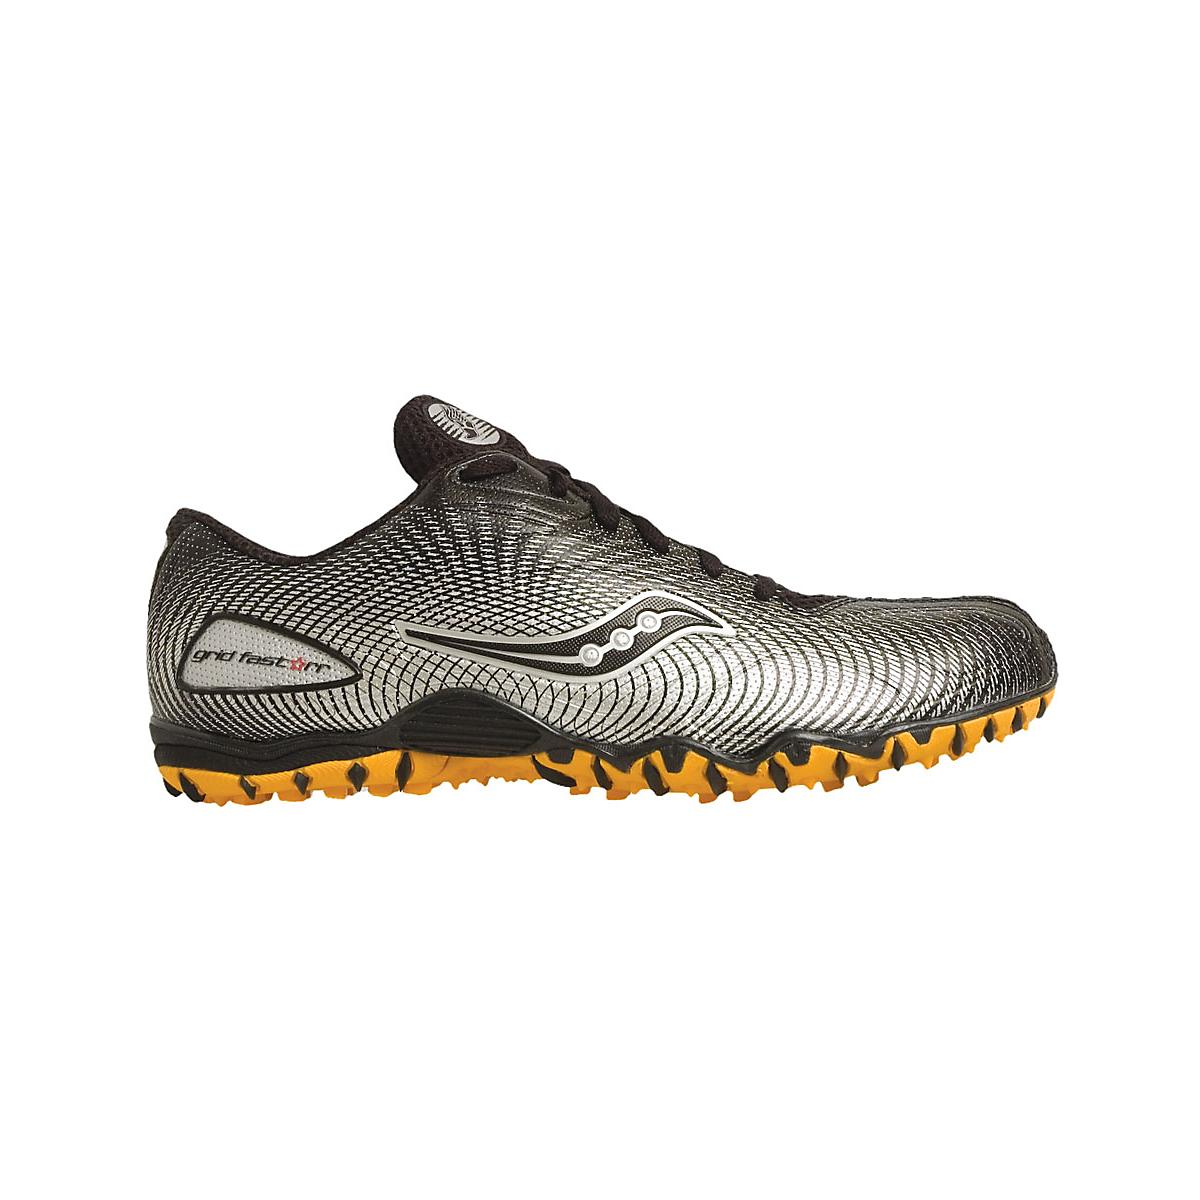 Mens Saucony Grid Fast Star RR Cross Country Shoe at Road